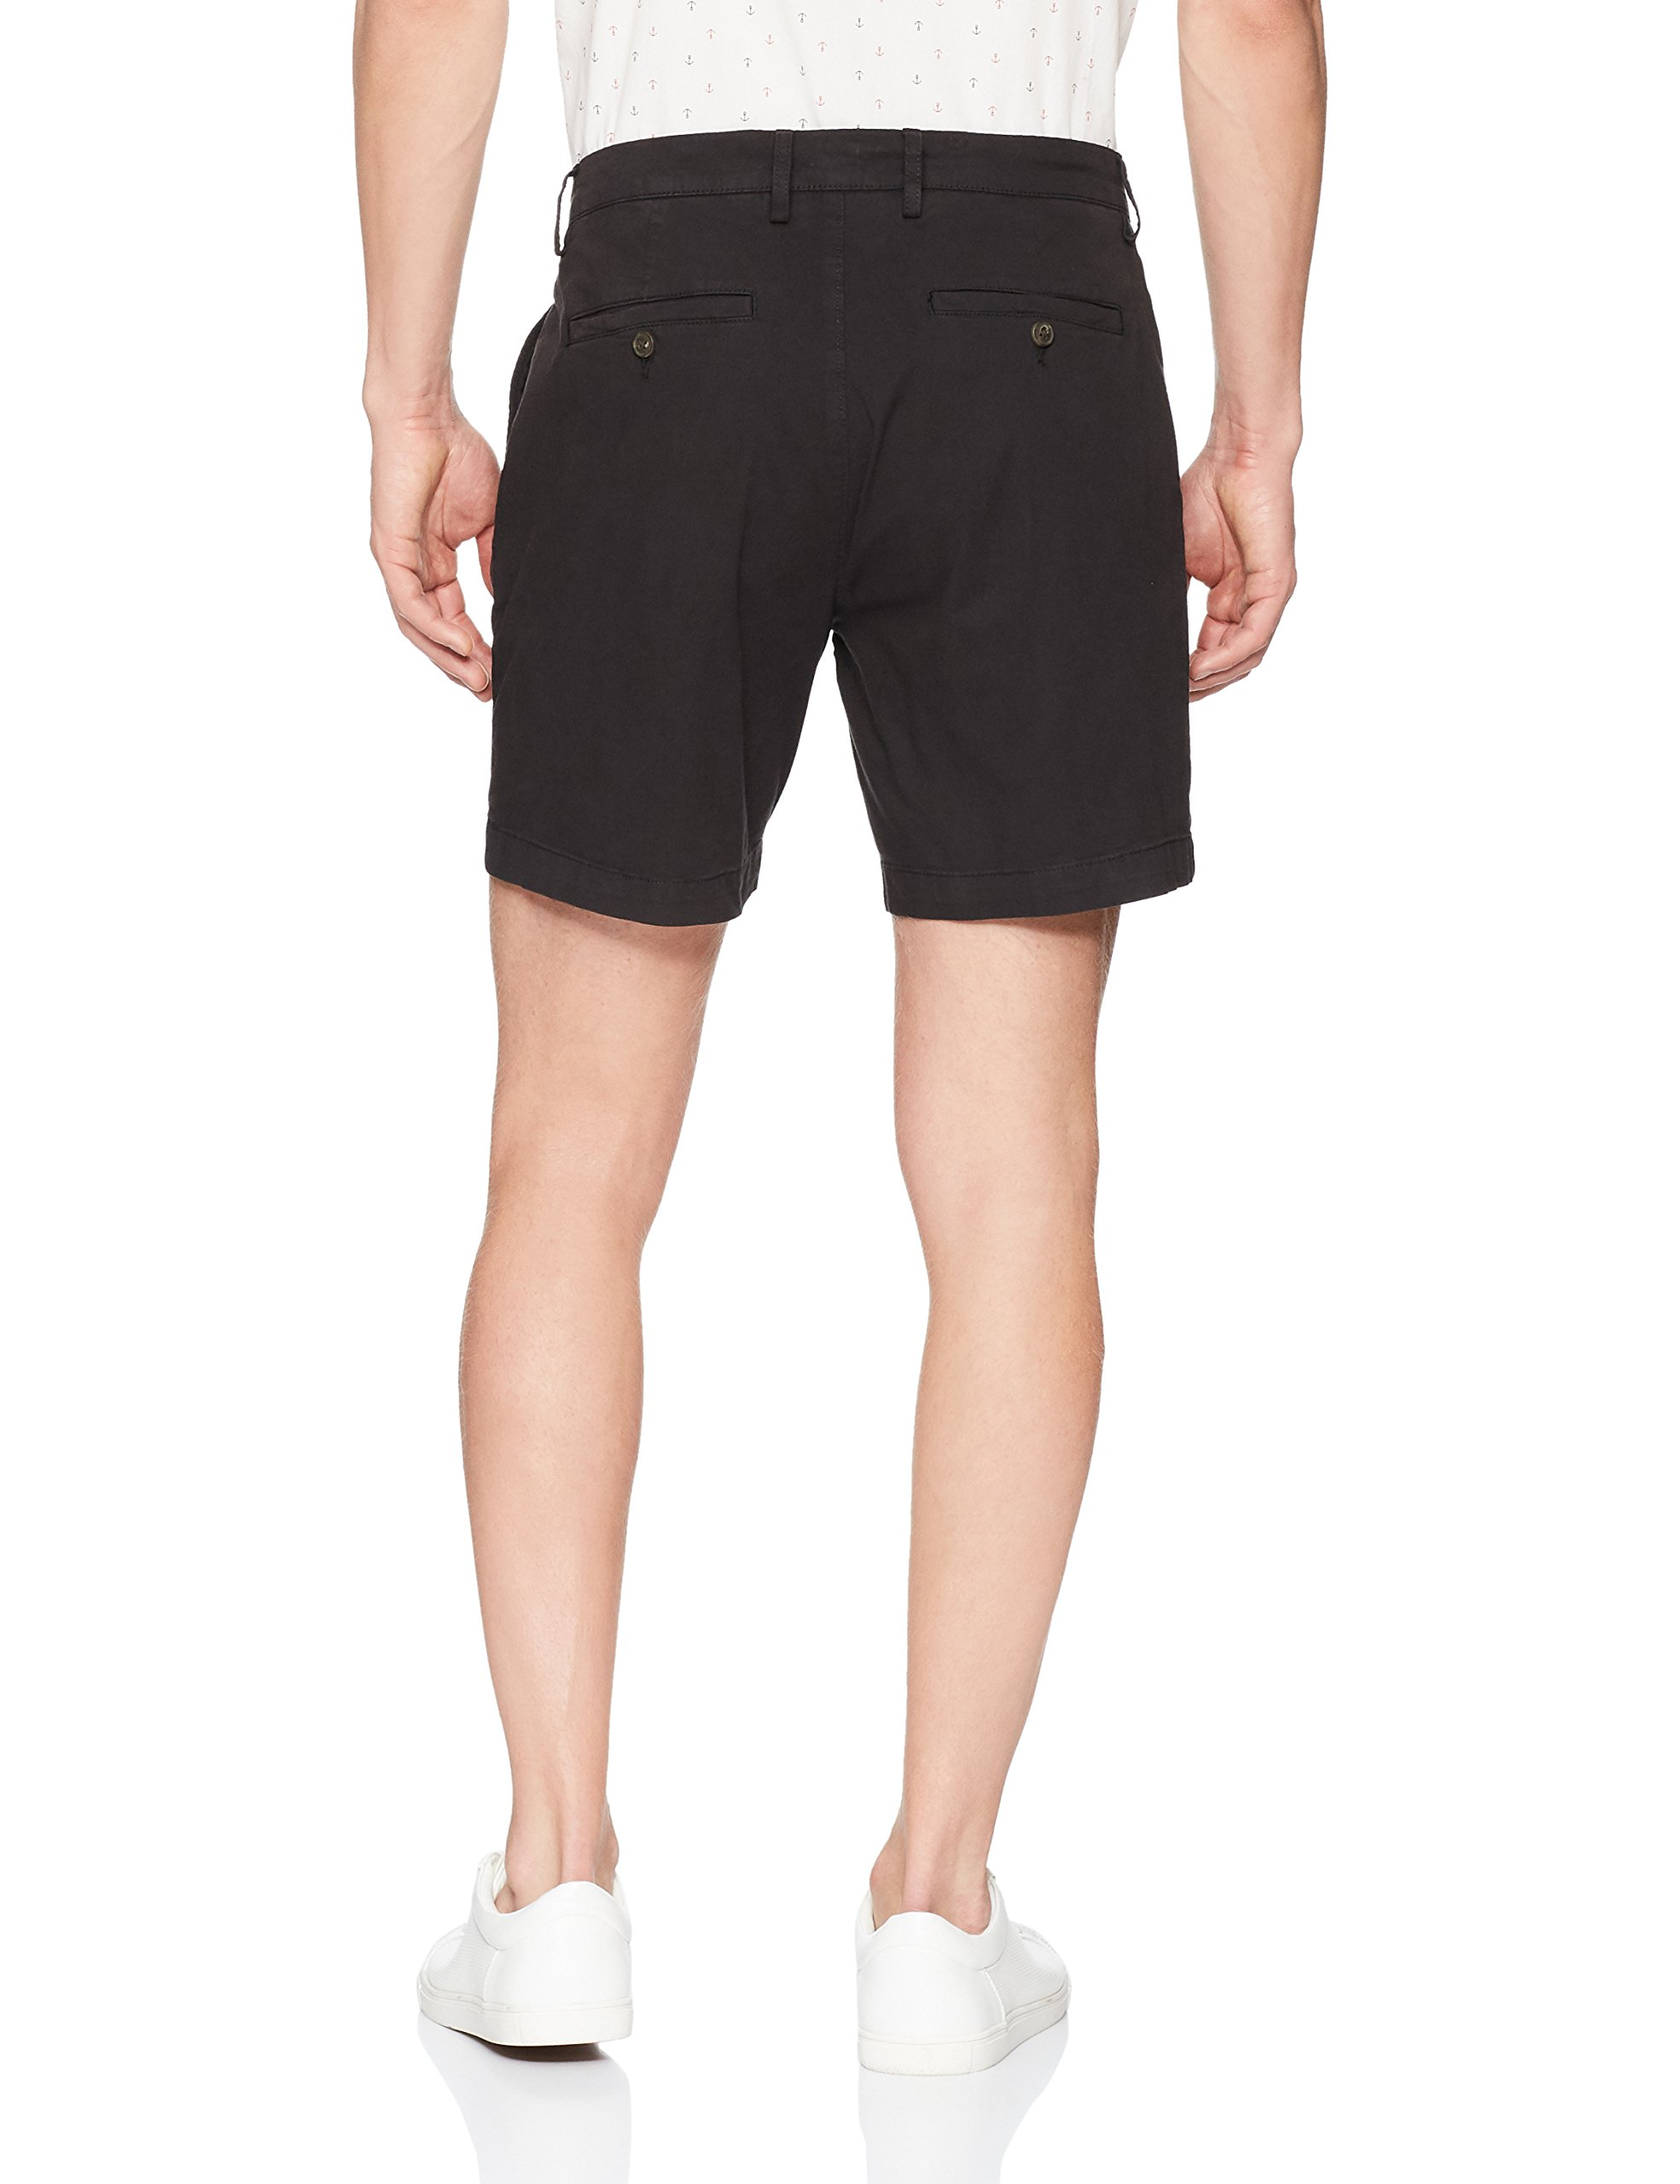 Goodthreads Men's 7'' Inseam Flat-Front Stretch Chino Short, Black, 32 by Goodthreads (Image #3)